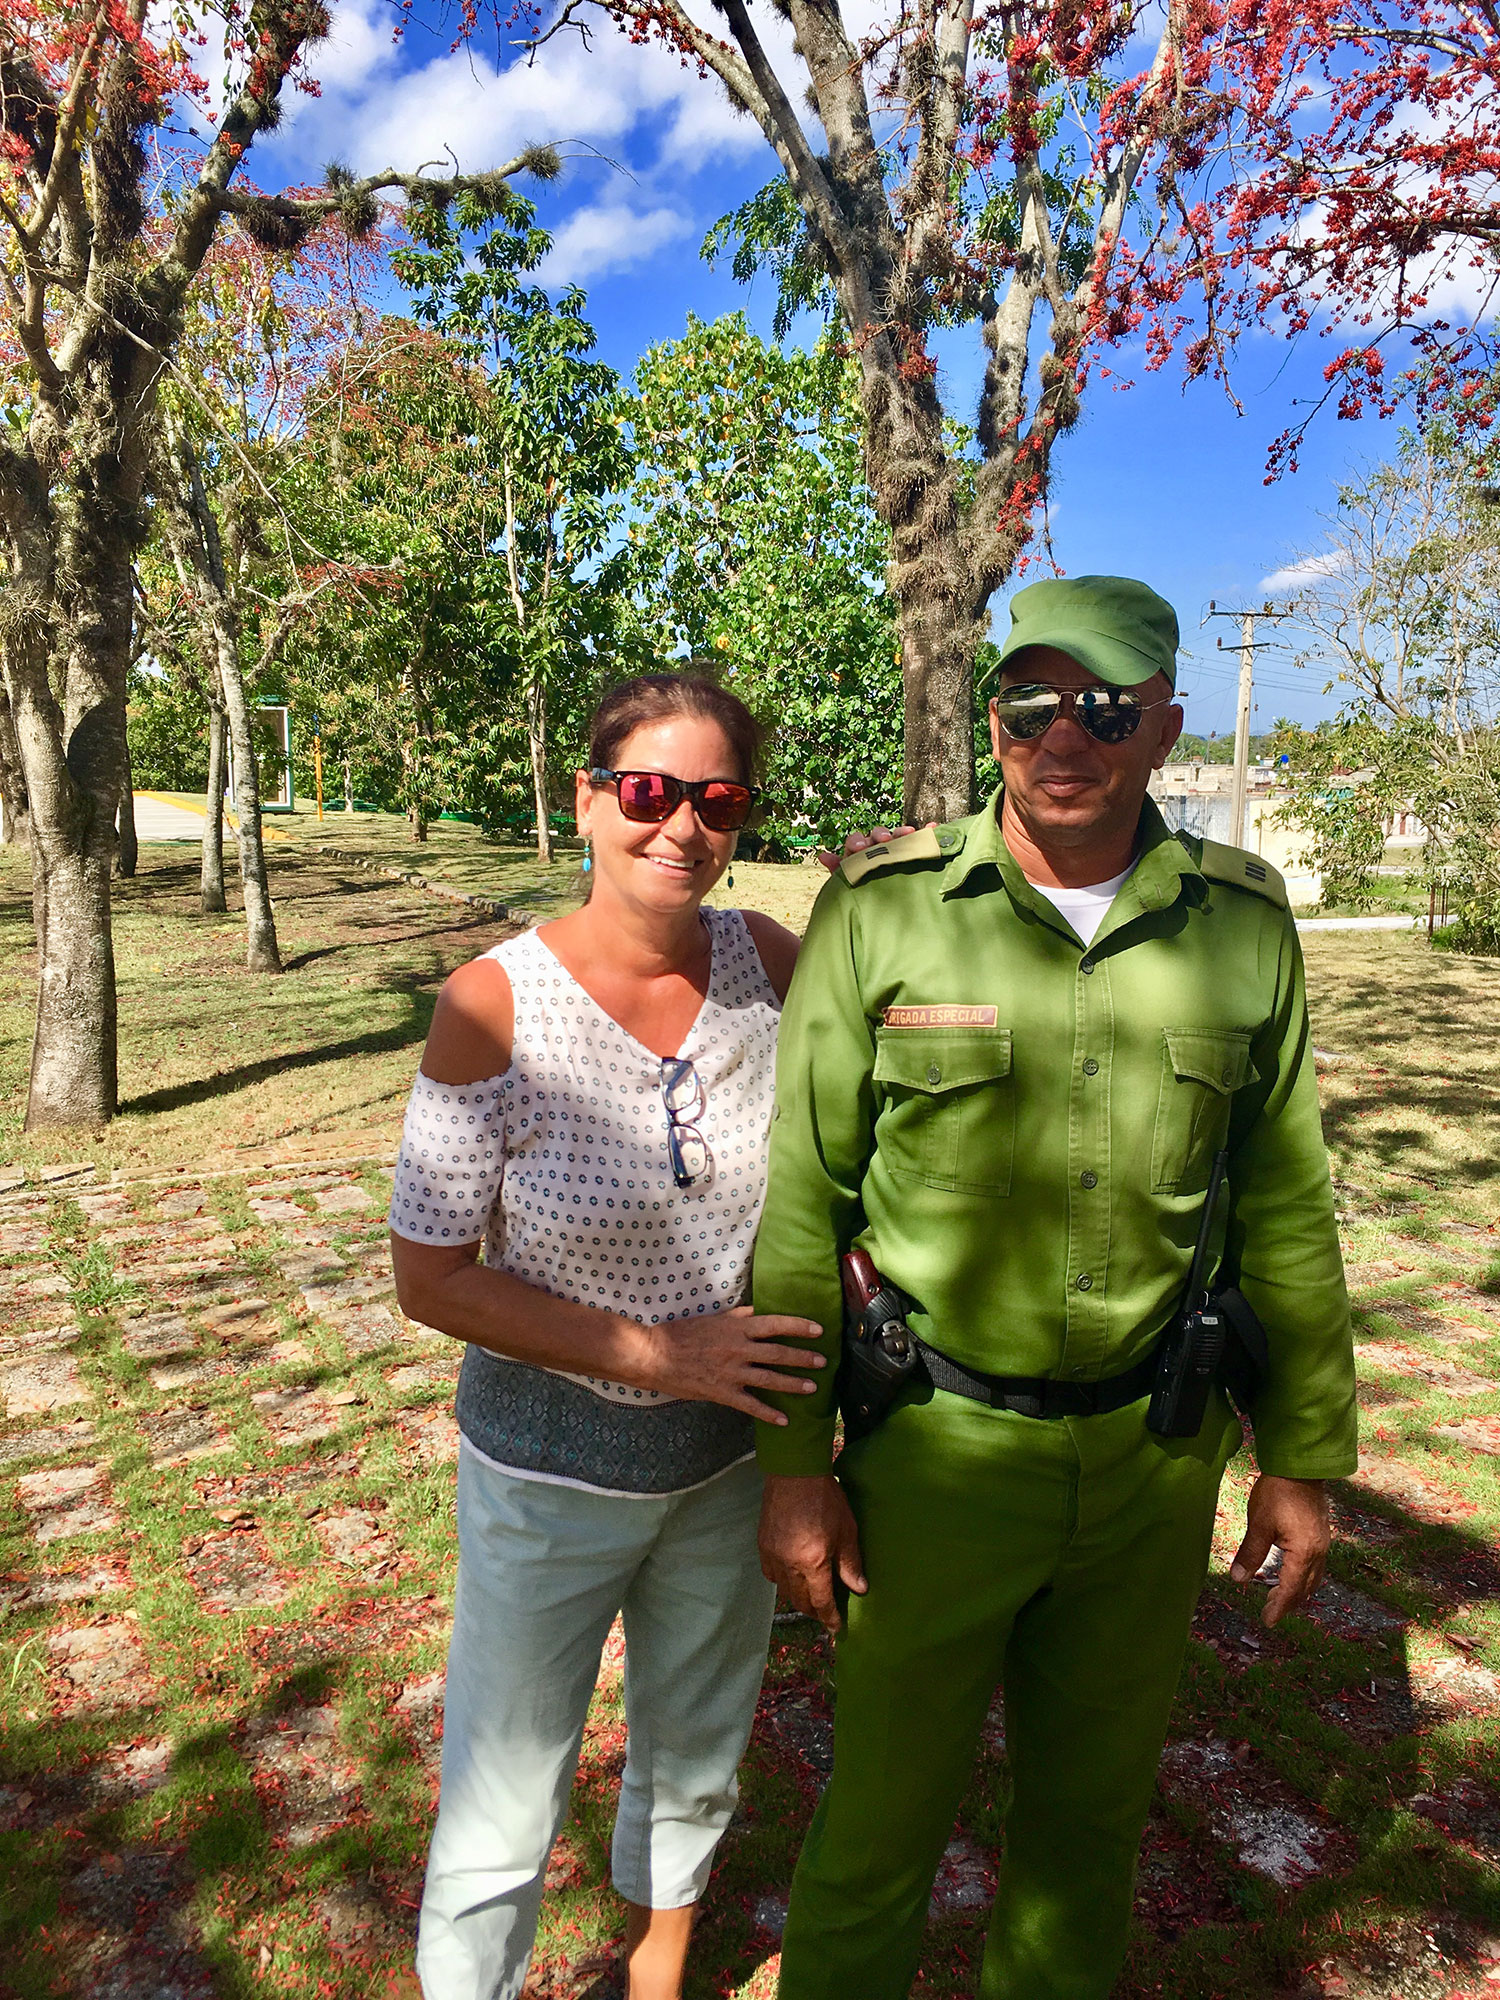 With a Cuban soldier, Under a Monkey Flower Tree.